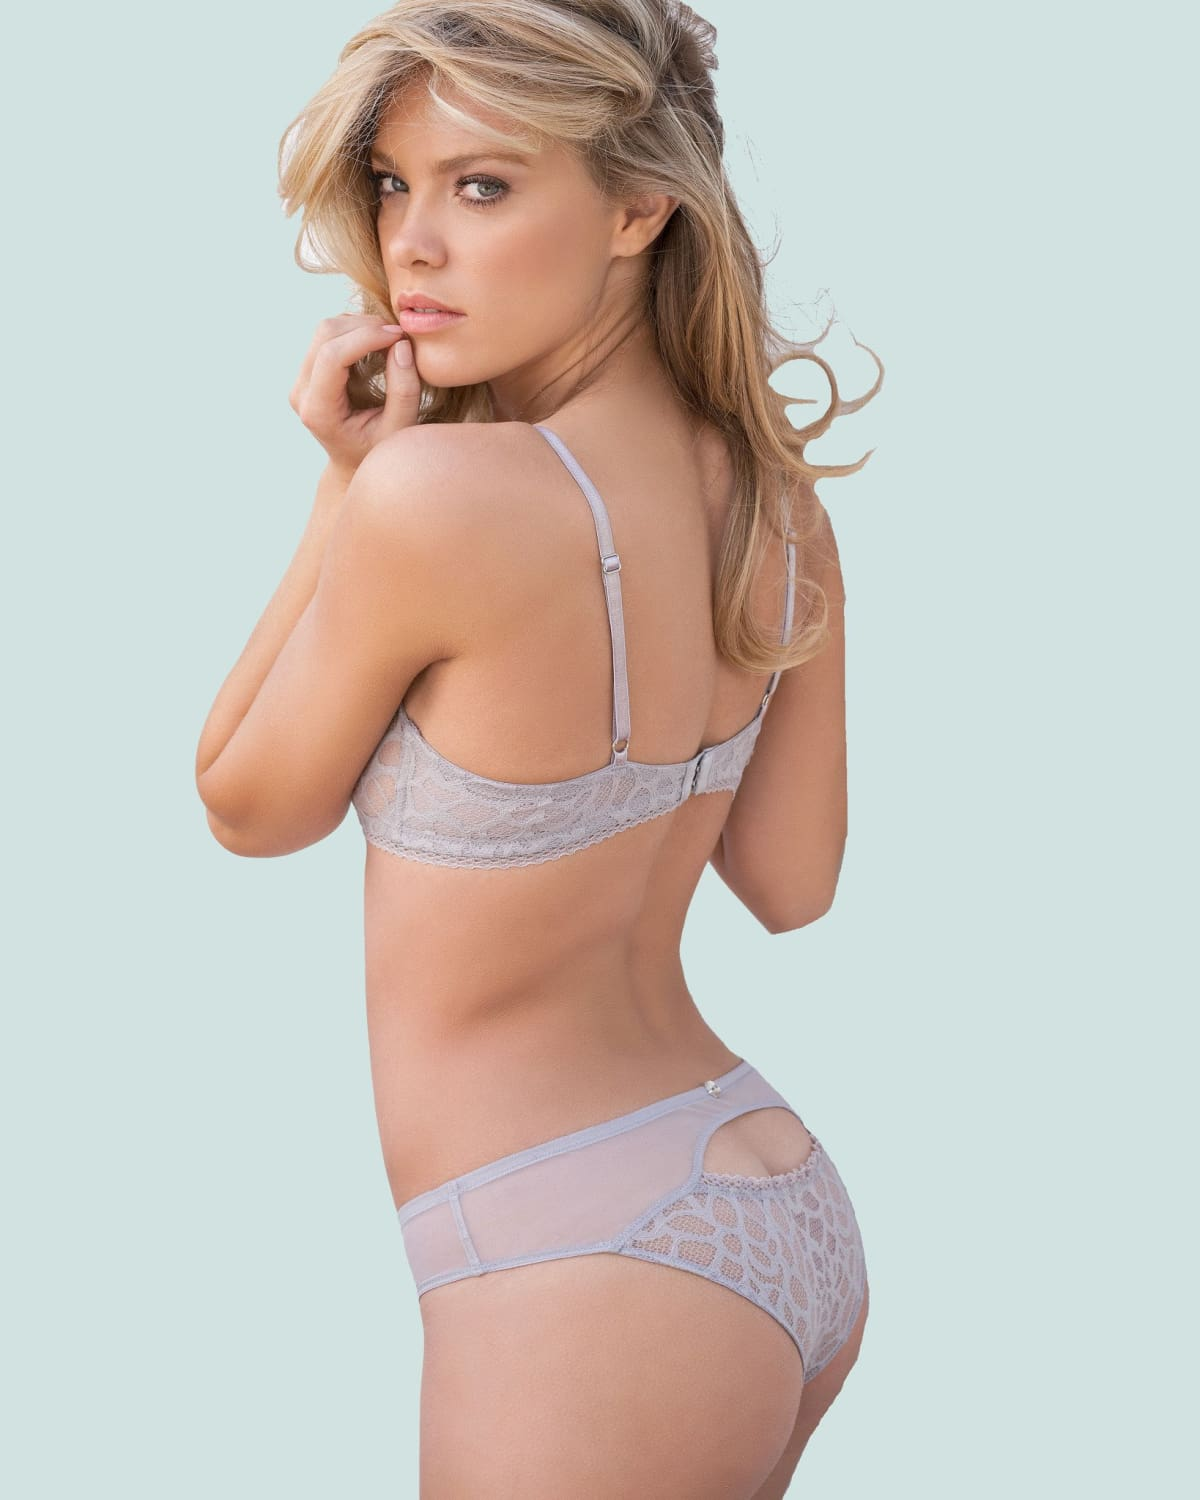 CHOOSING THE BEST STUFF OF YOUR ATTRACTIVE LINGERIE